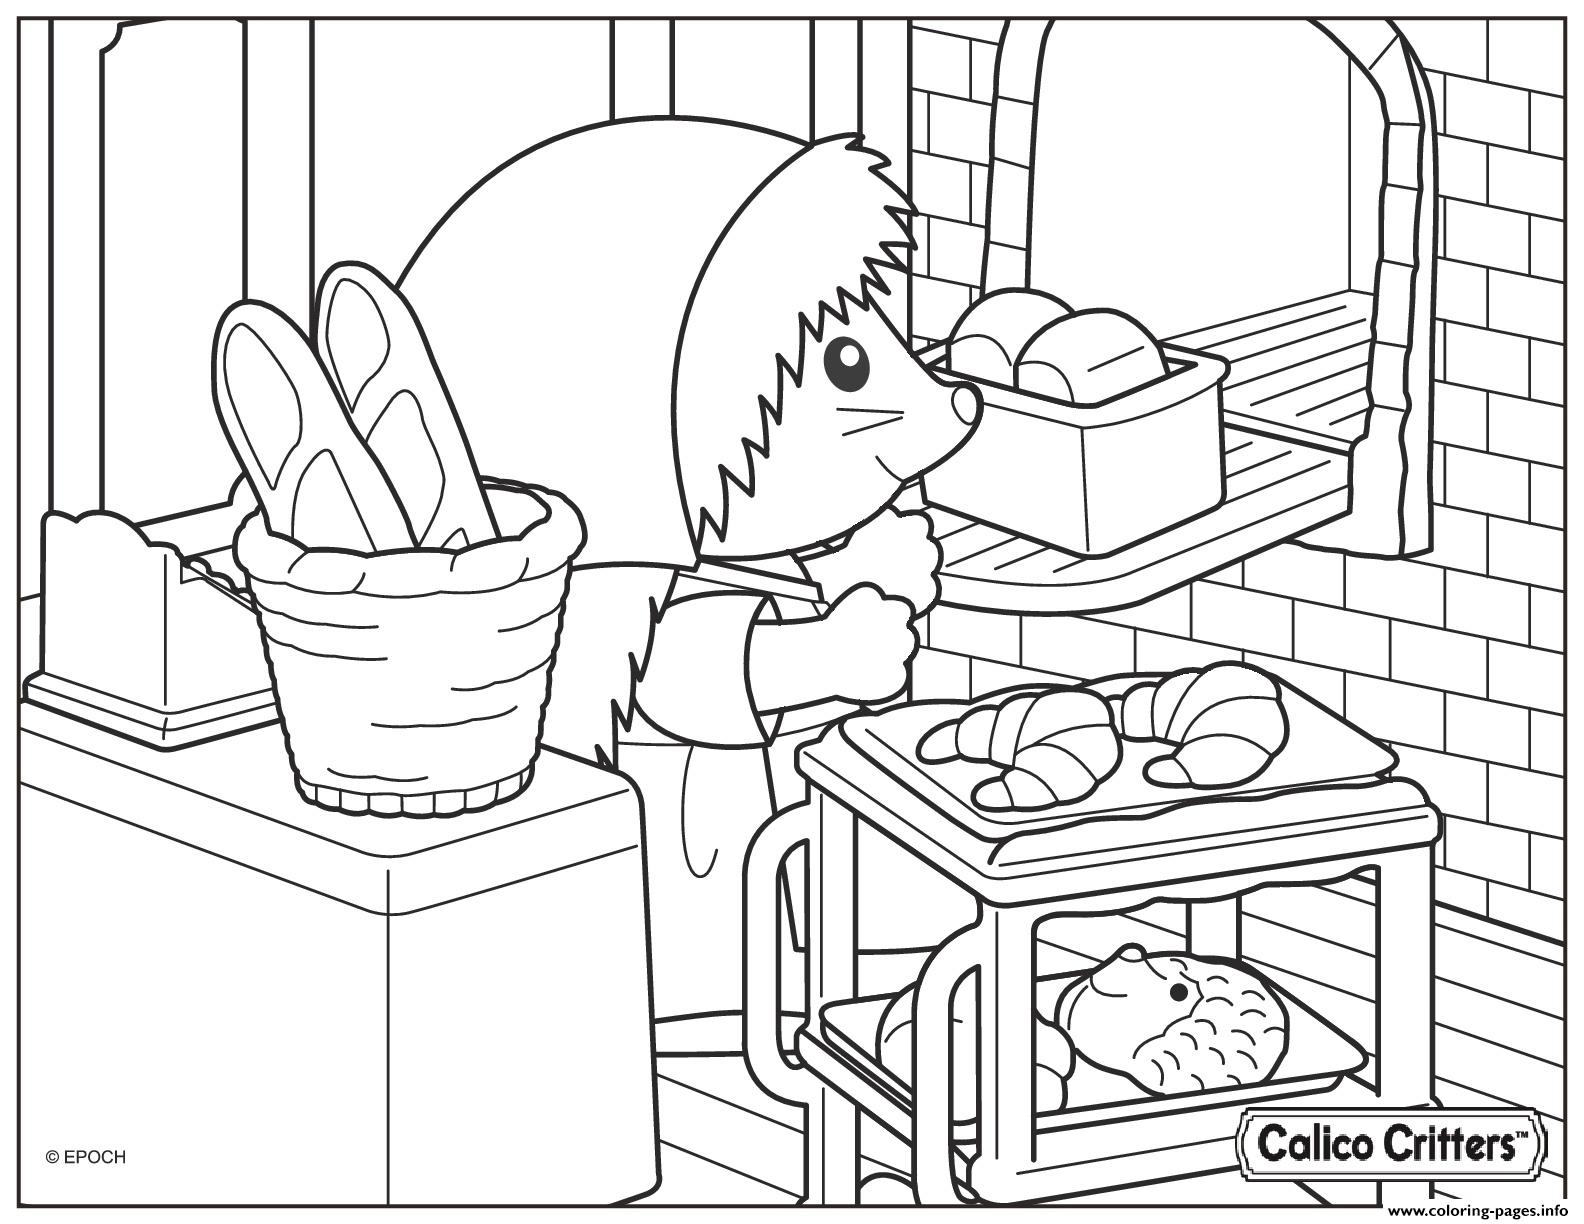 Calico Critters Cooking Croissant Bread coloring pages